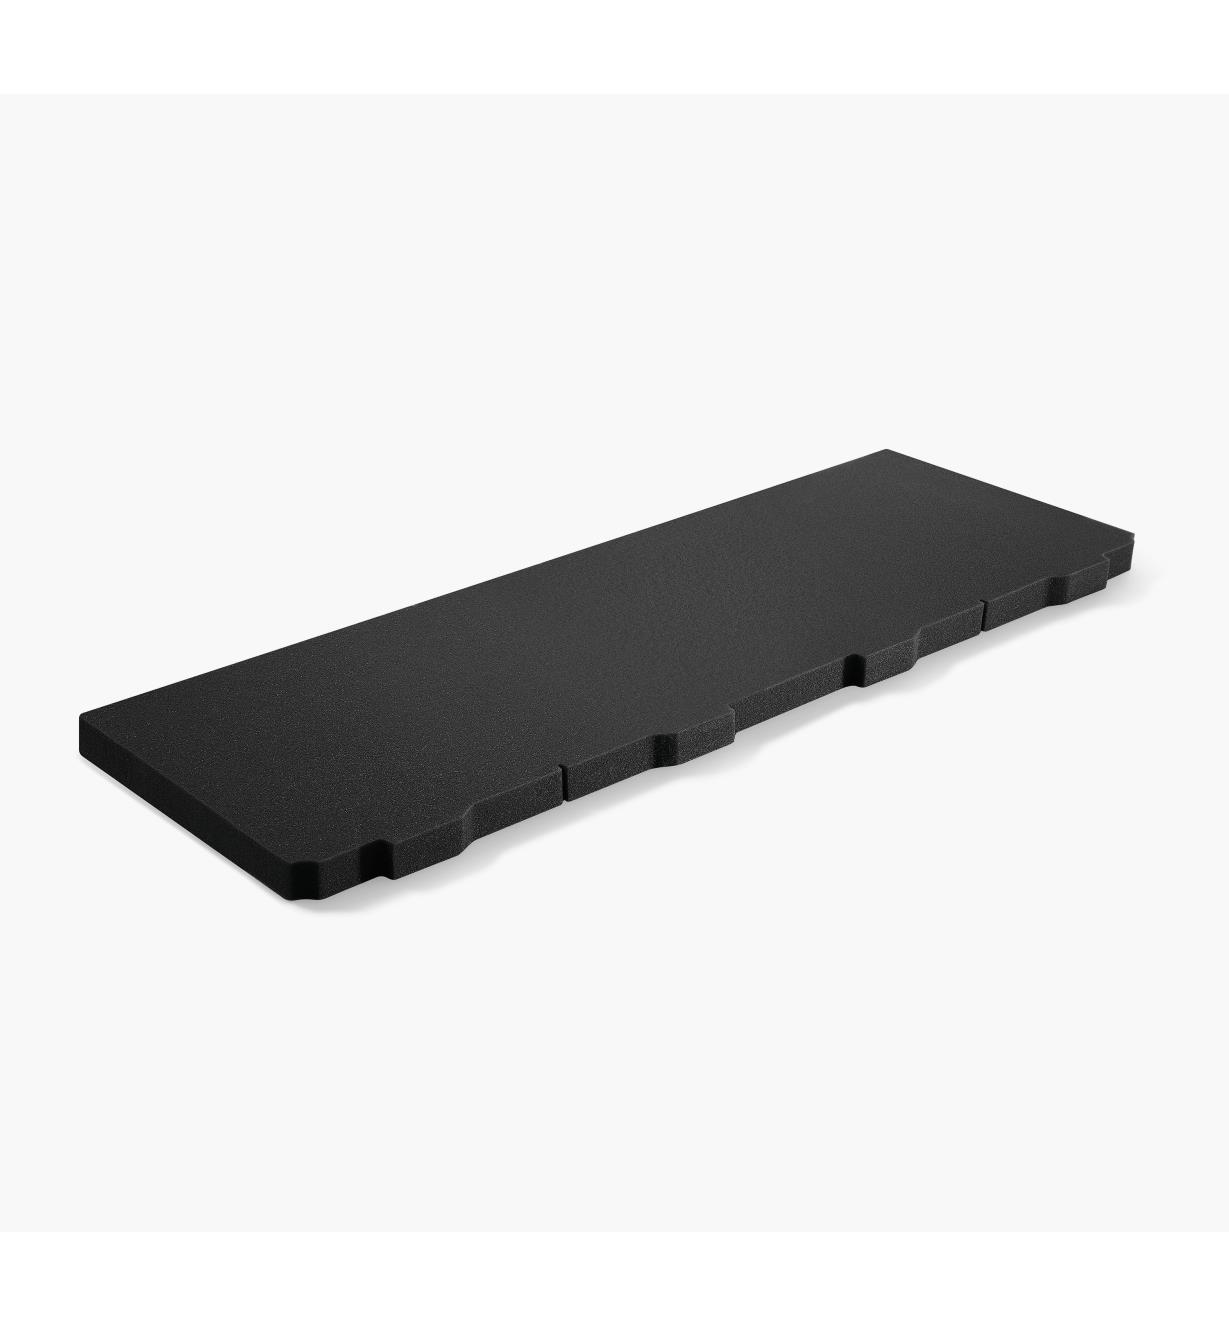 Base Pad for Systainer³ XXL